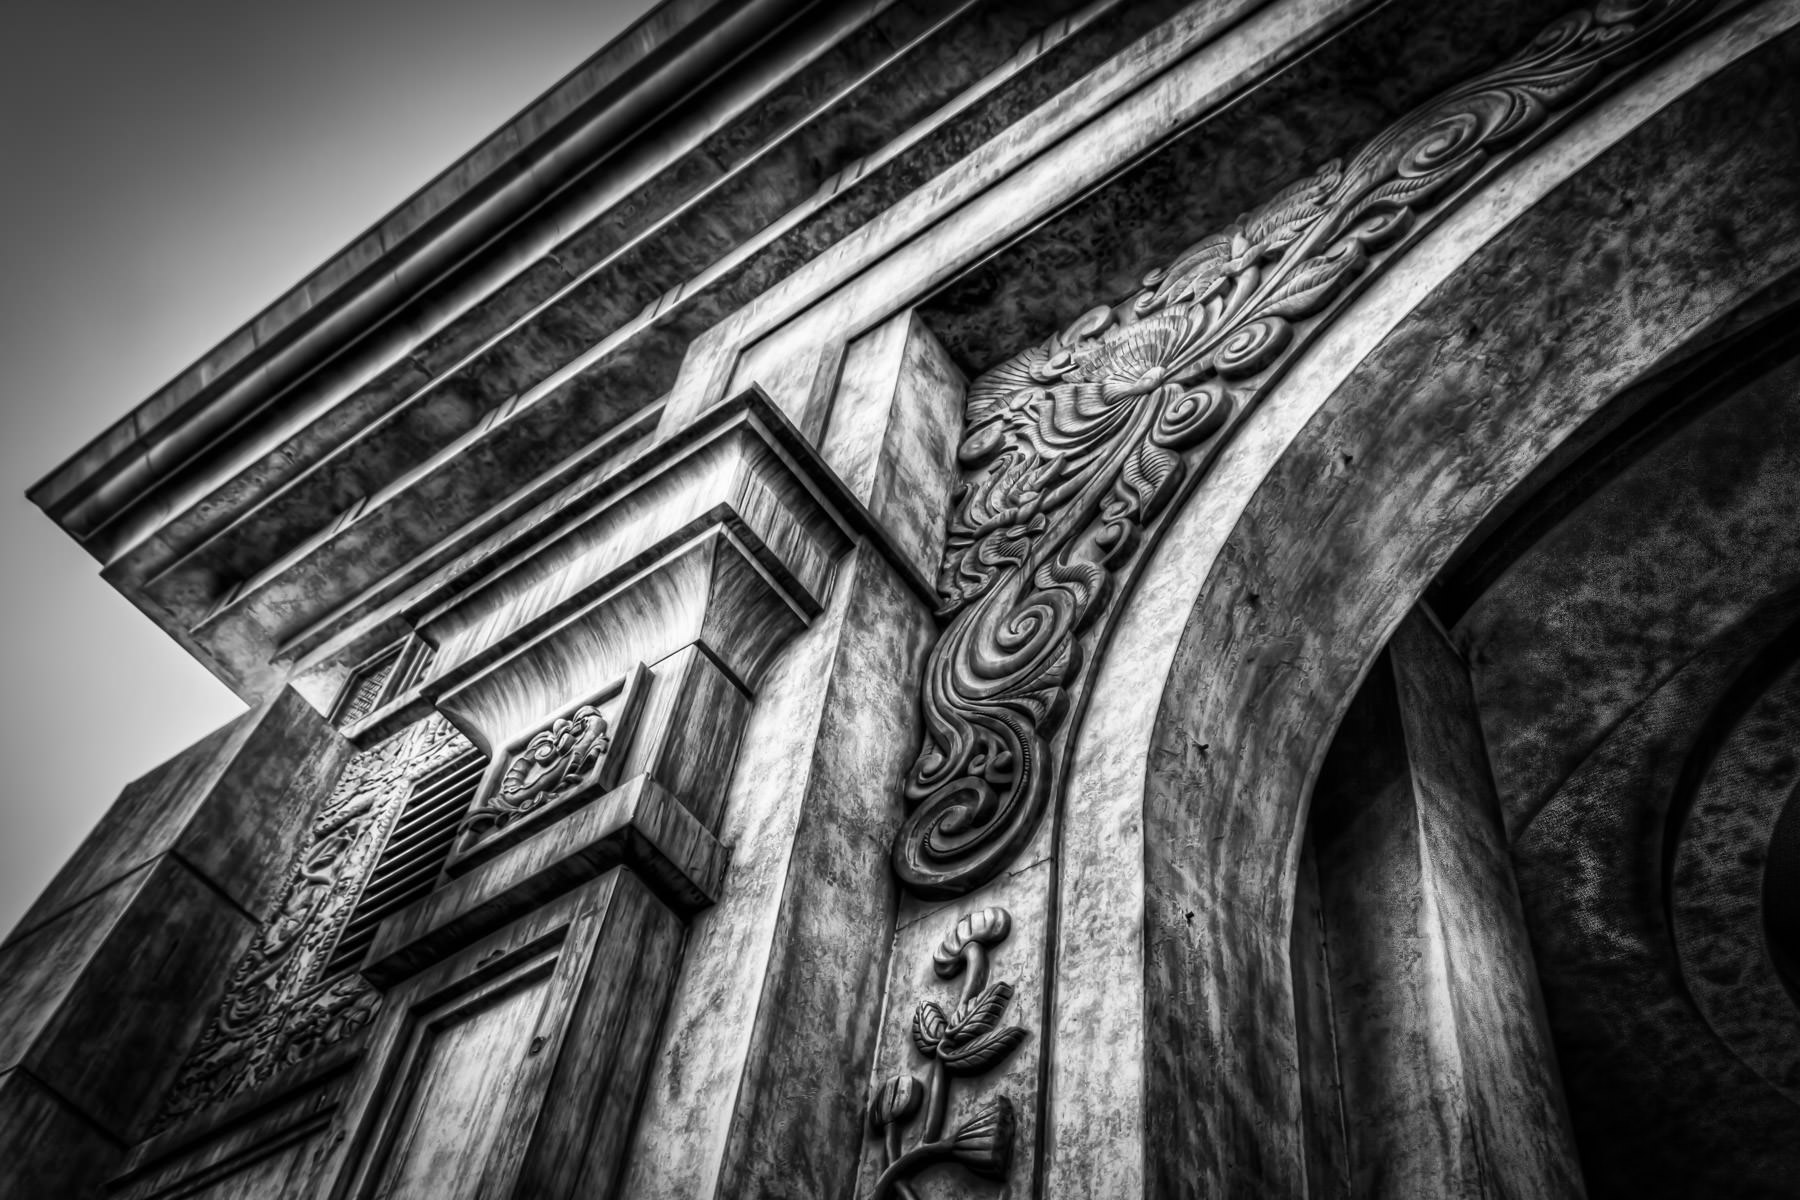 Detail of the arched entryway to Mandalay Bay, Las Vegas.